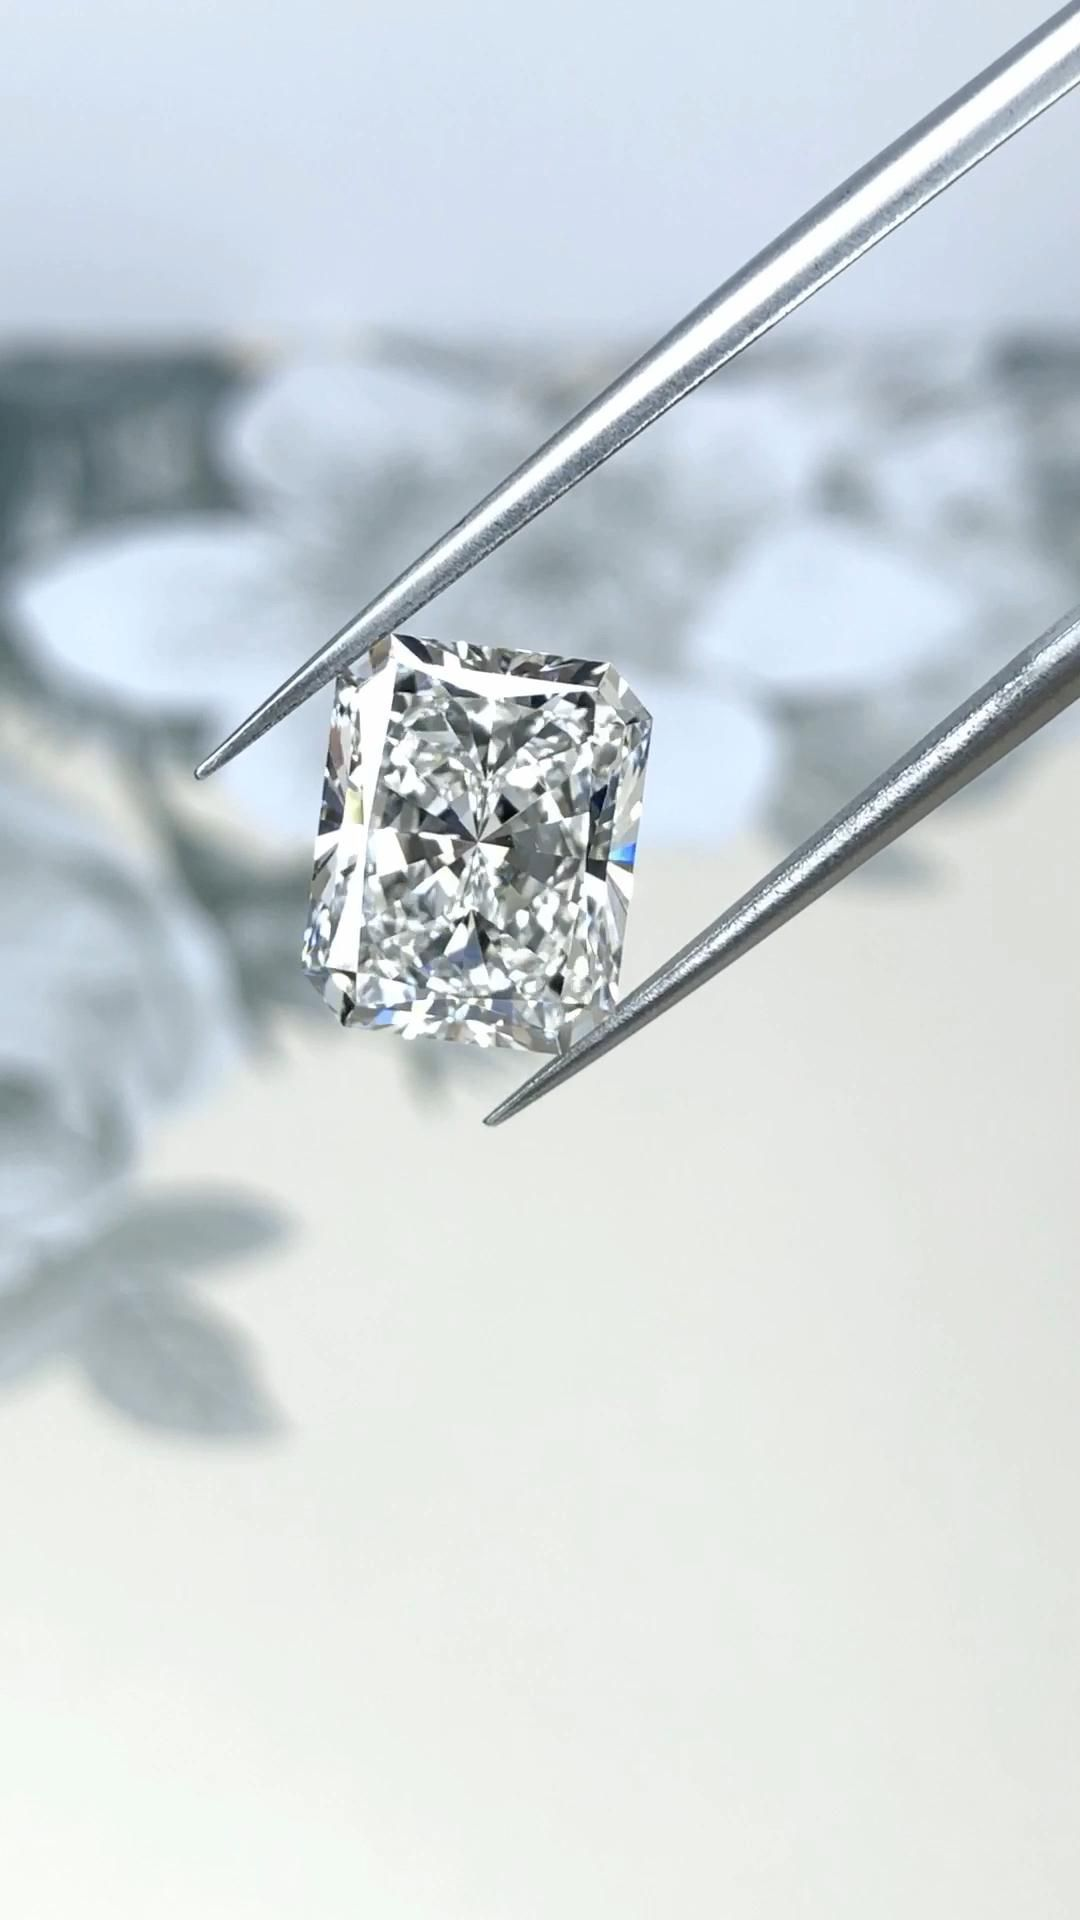 Selected with the same impeccable care as our natural diamonds.  Ascot Diamonds proudly offers the most perfectly cut, brilliant Lab Grown Diamonds at prices competitive with any other source.   #labgrowndiamonds #radiantcut #diamond #diamondengagementrings #ascotdiamonds